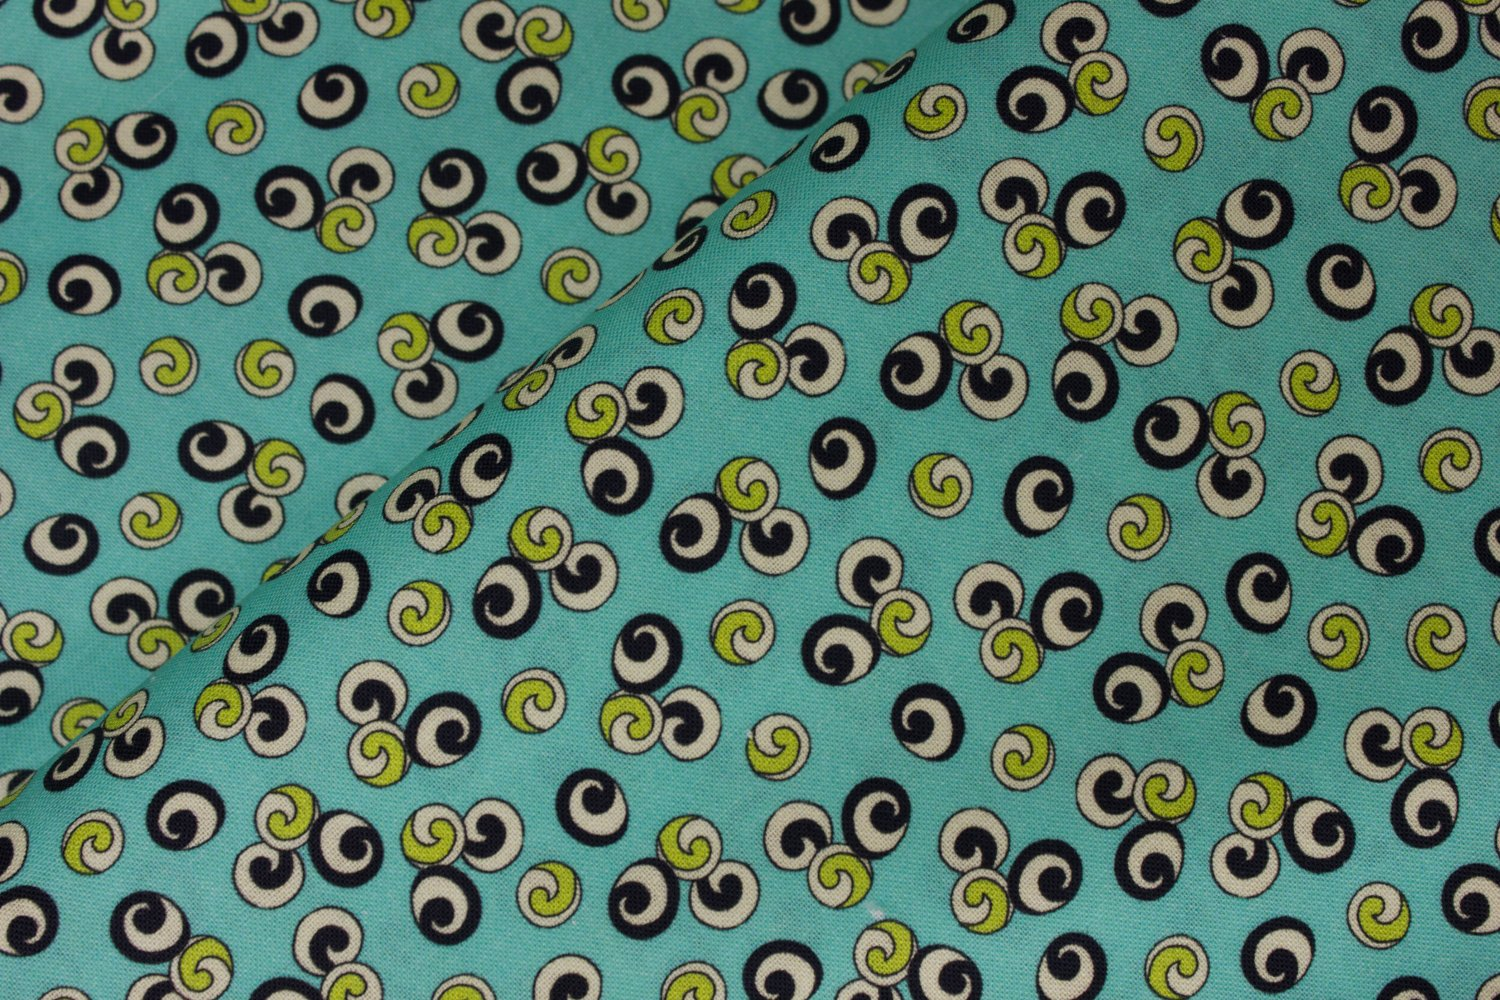 Circles with Lime, Cream, and Black Swirls on Aqua by Quilting Treasures